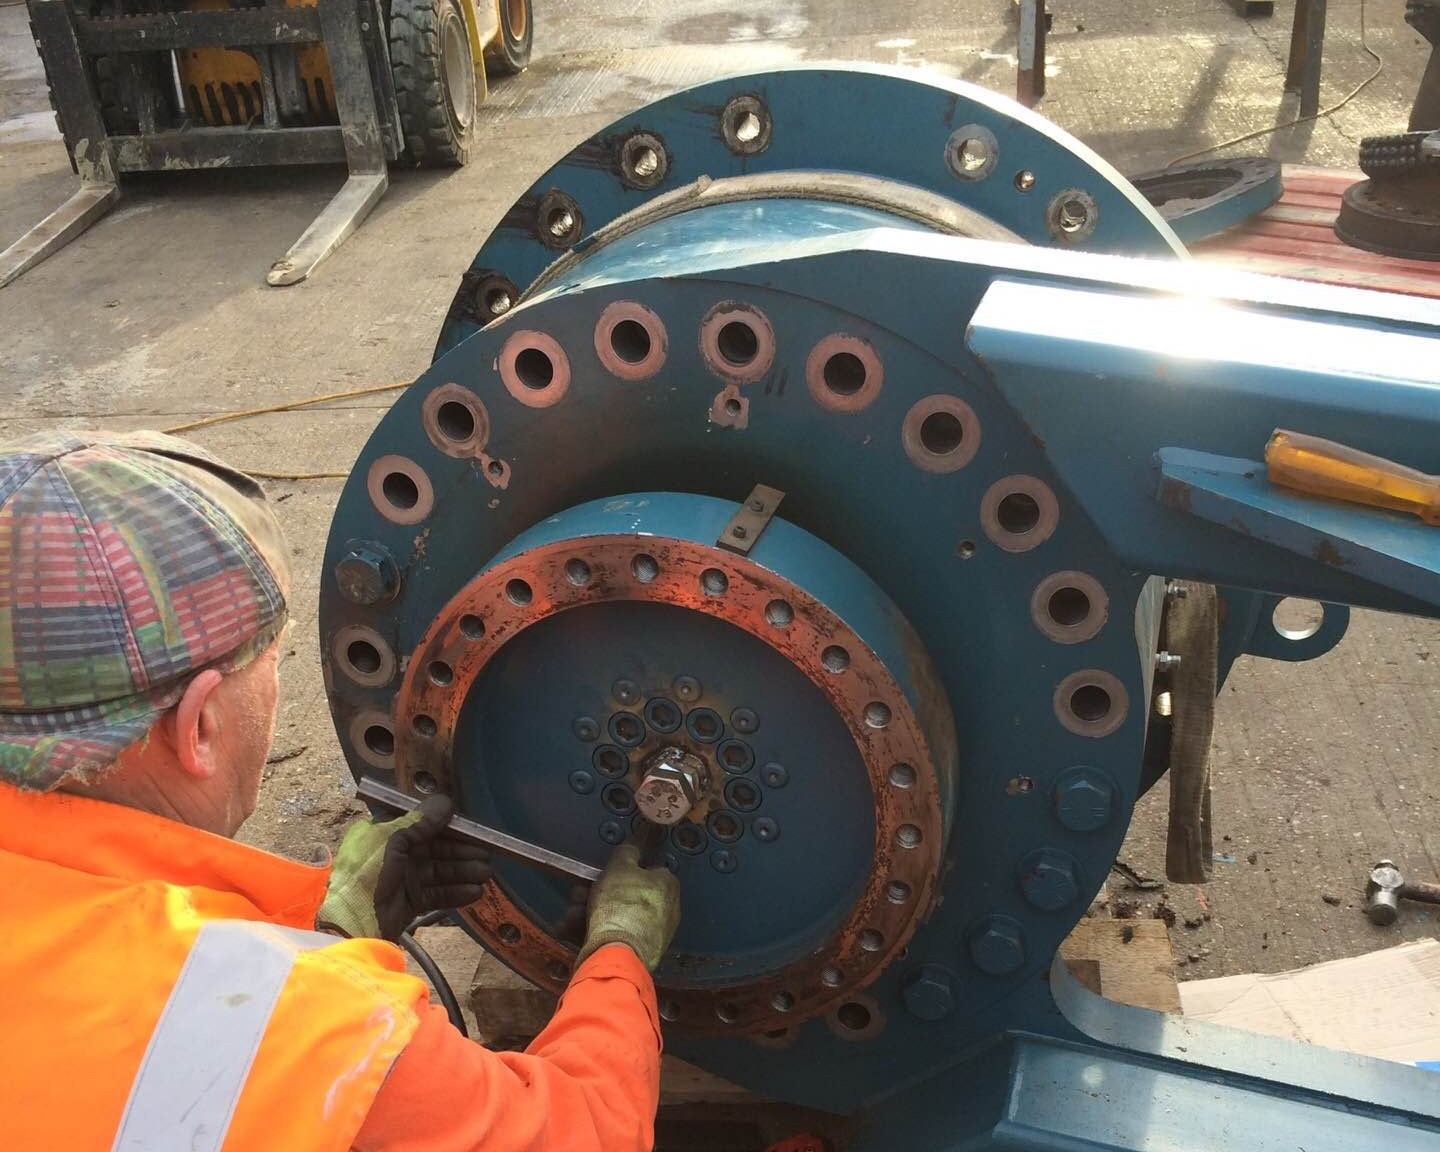 Dismantling a damaged gearbox